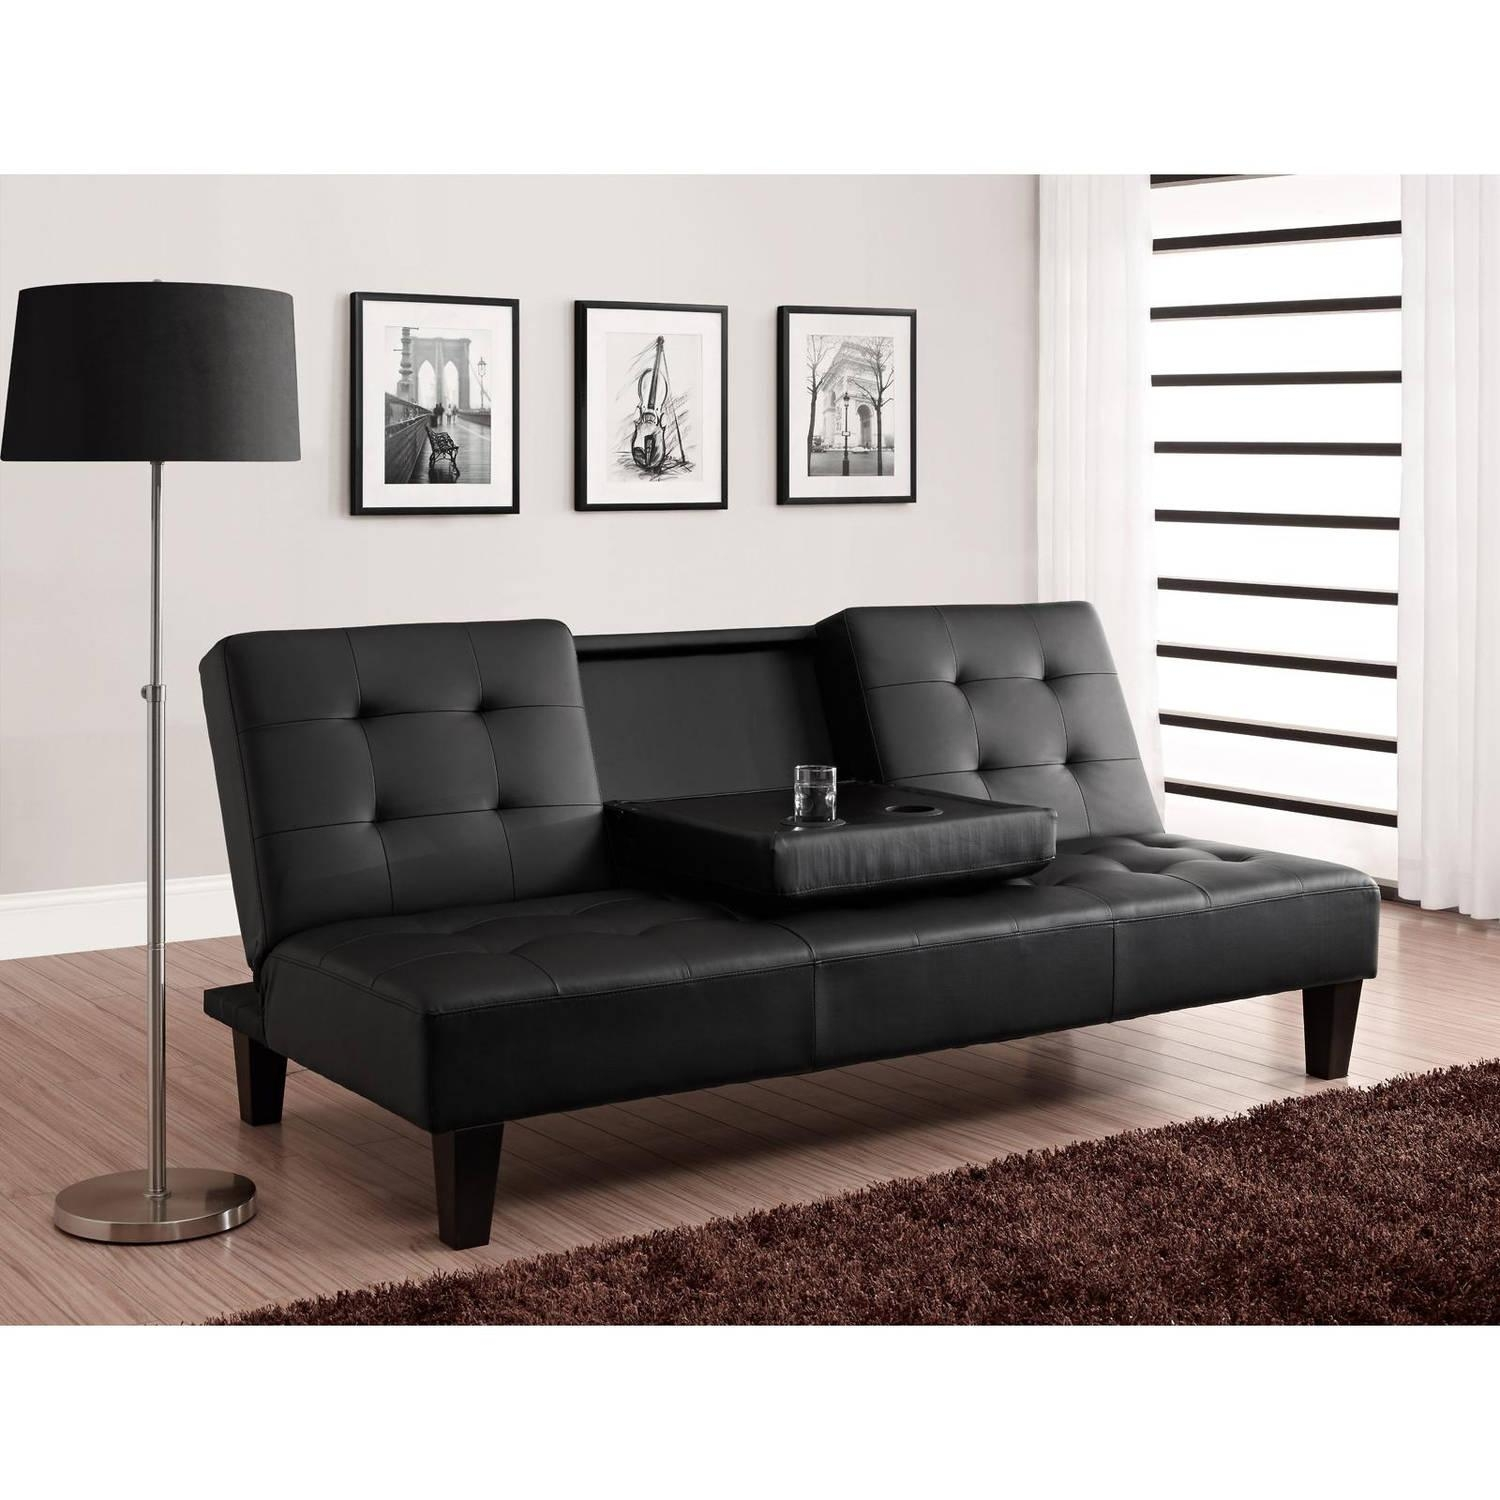 Julia Cupholder Convertible Futon, Multiple Colors – Walmart With Regard To Small Black Futon Sofa Beds (View 10 of 20)